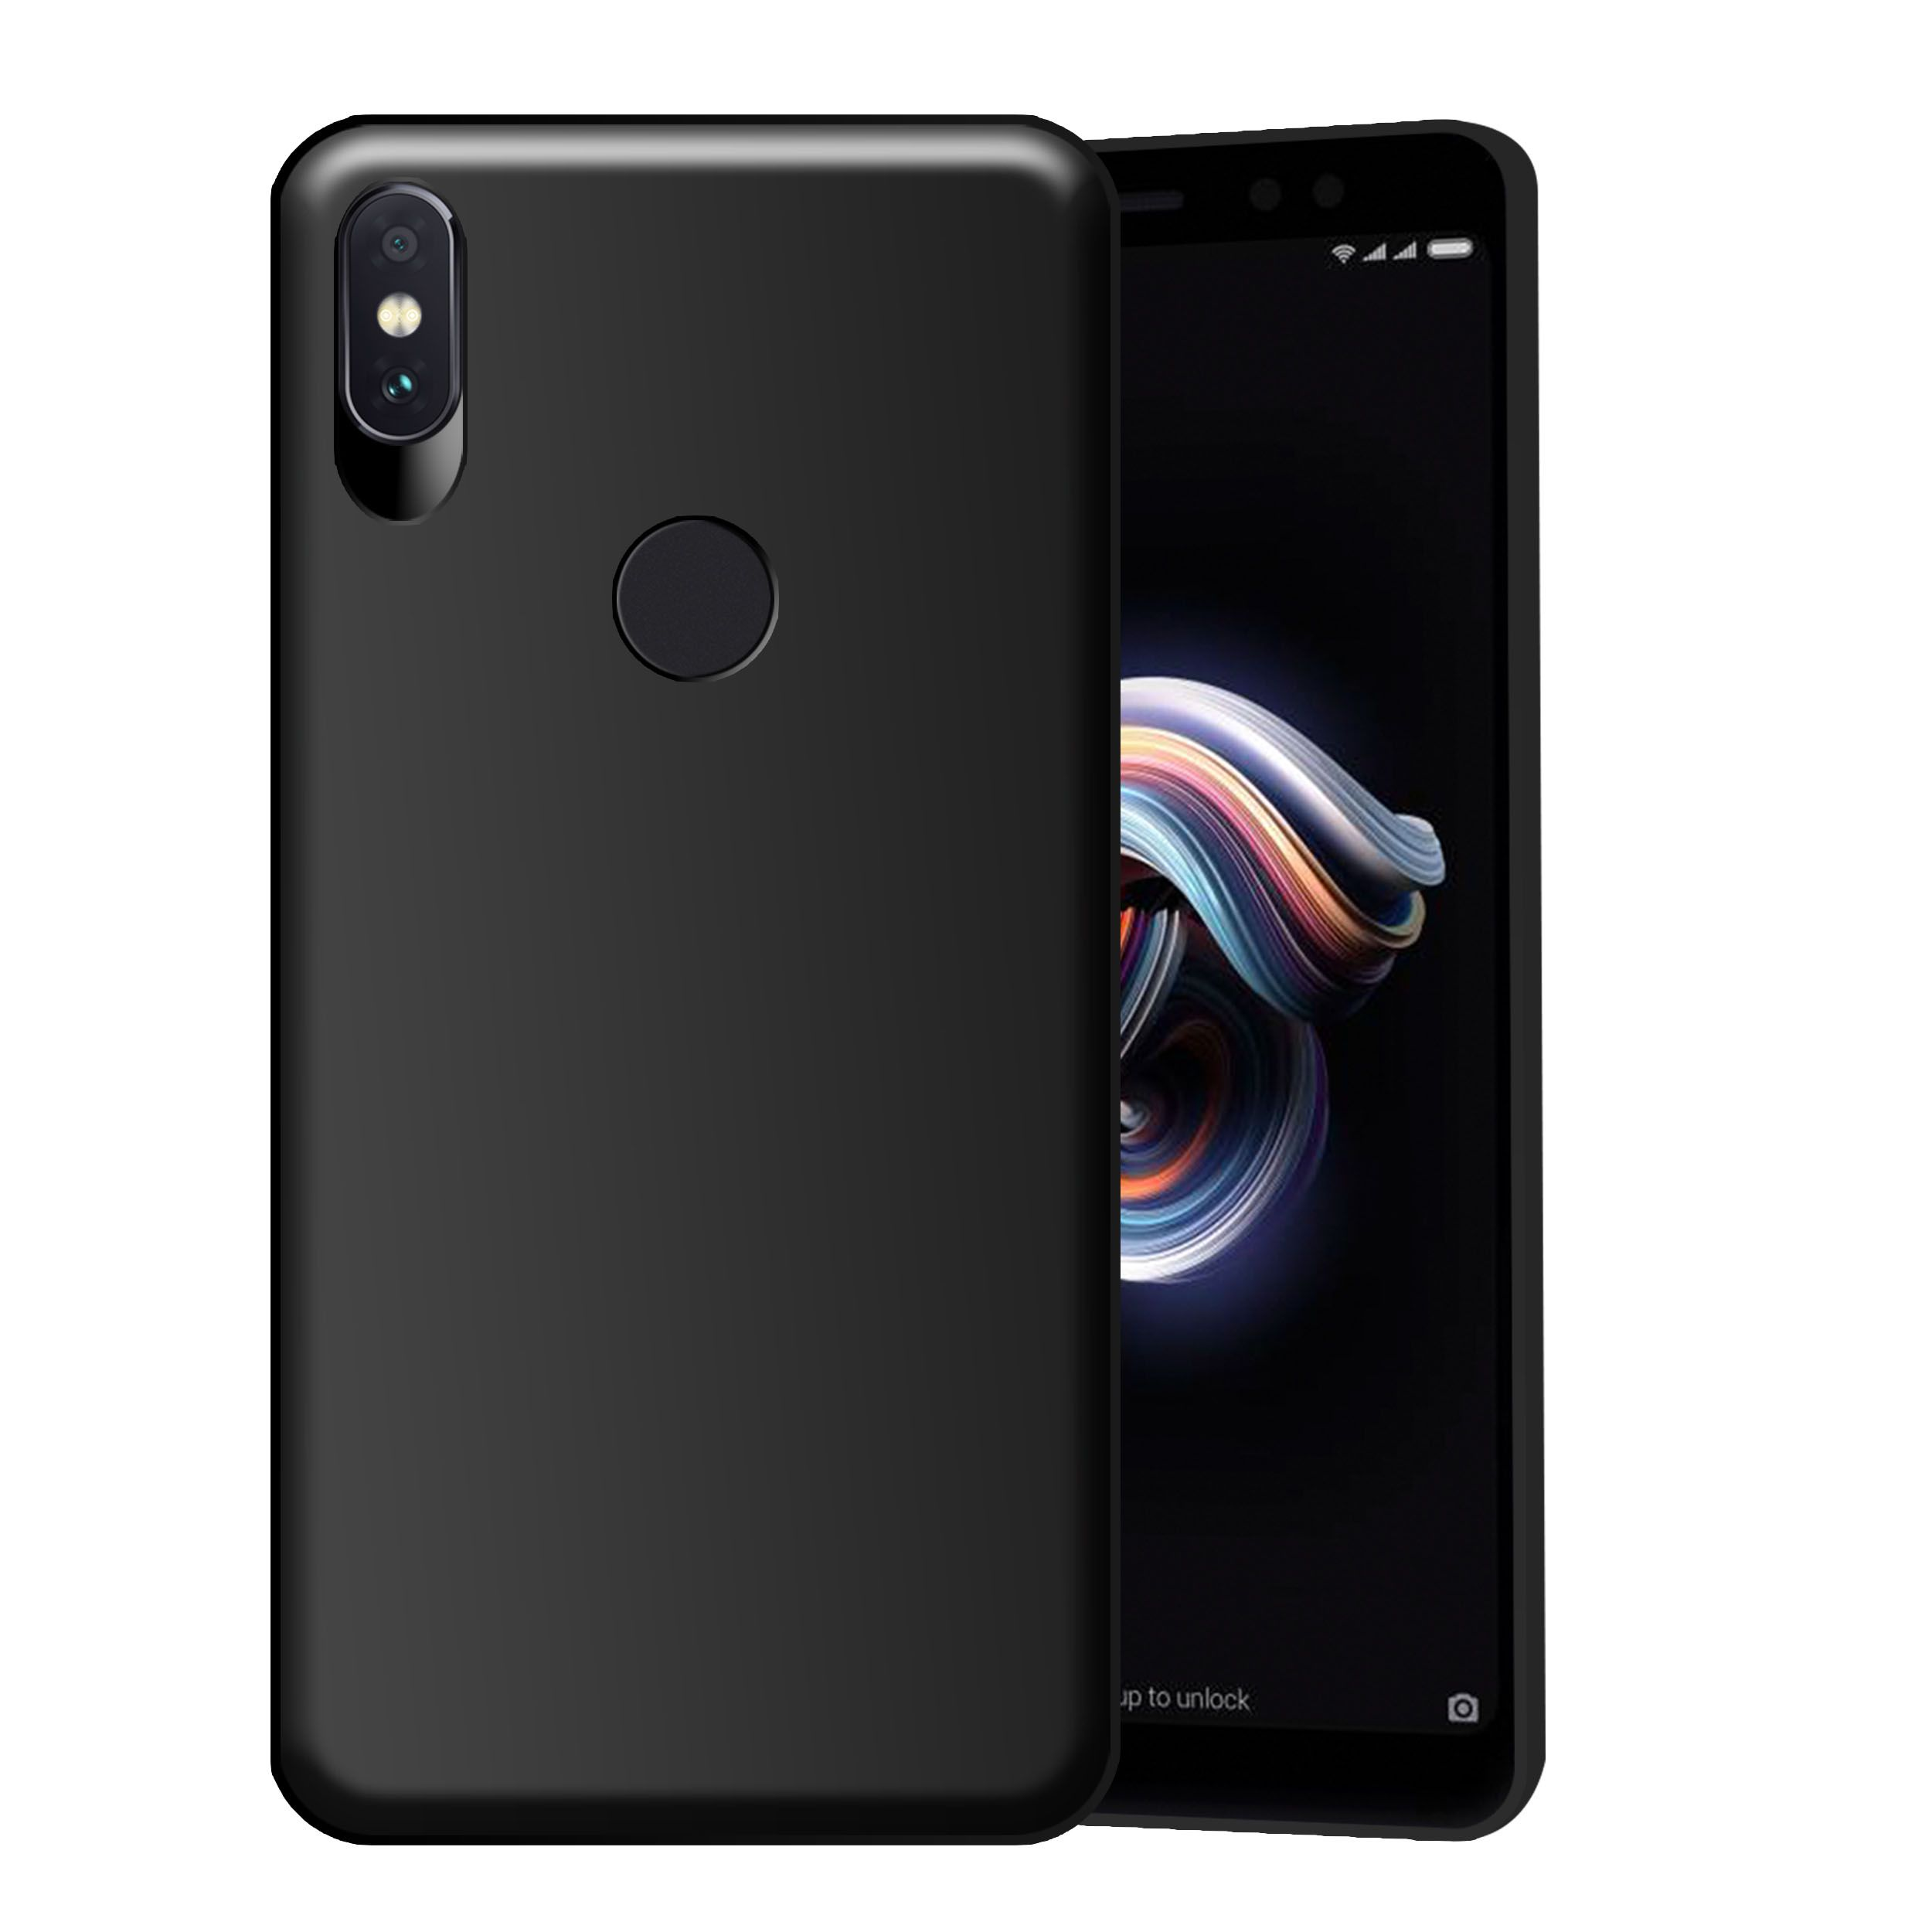 eaf2e76a3b Xiaomi Redmi Note 5 Pro Plain Cases Hupshy - Black - Plain Back Covers  Online at Low Prices | Snapdeal India